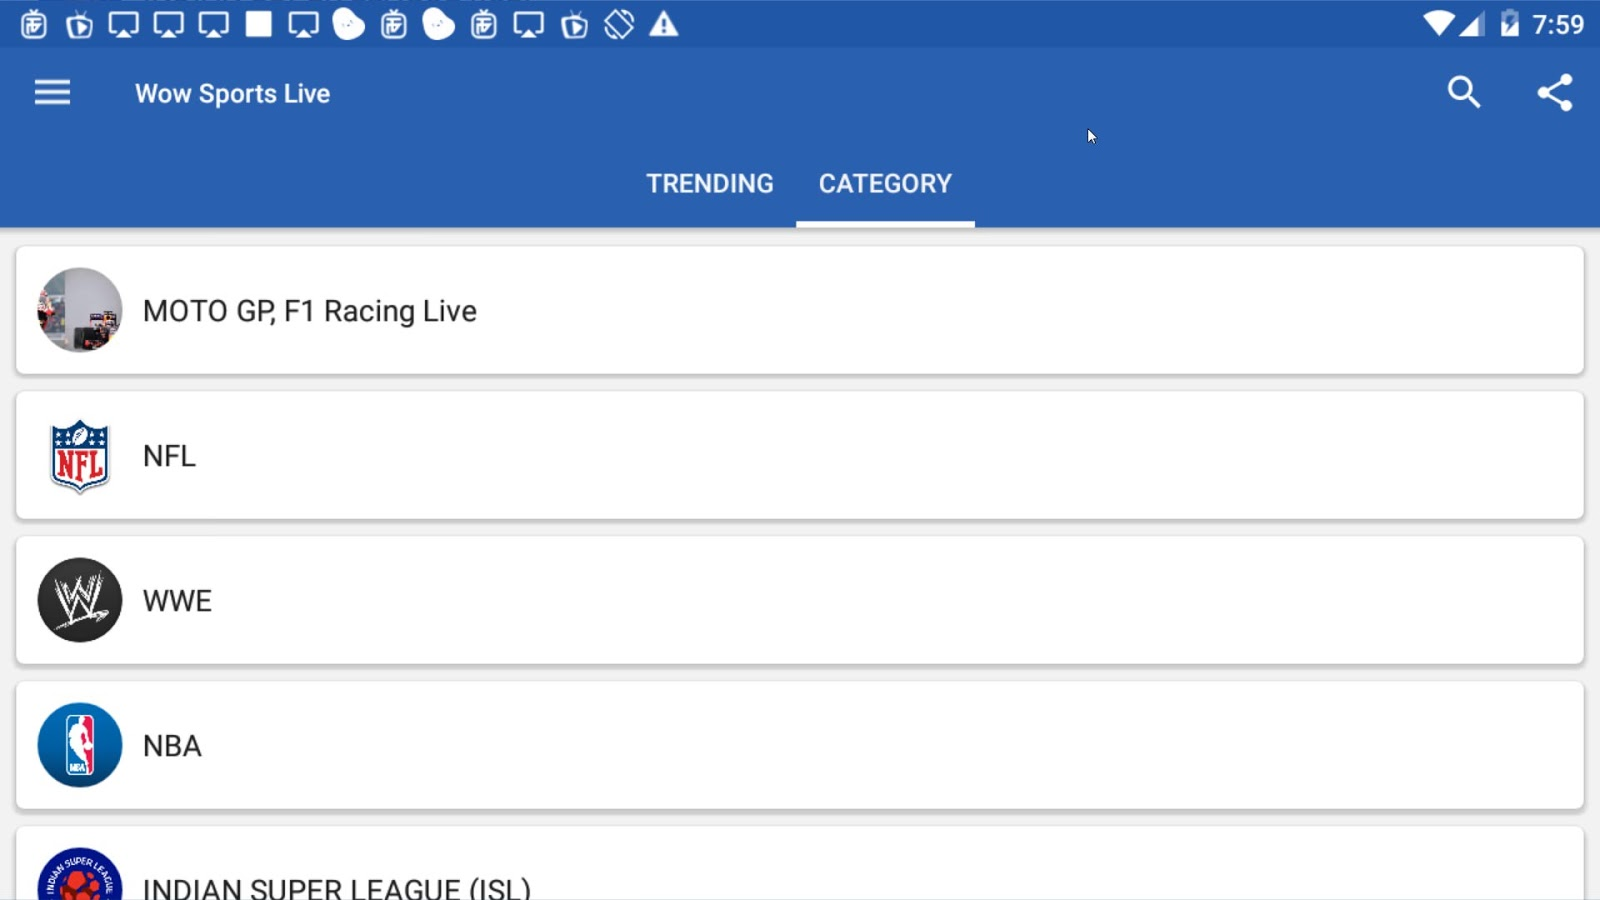 WoW Sports Live Apk App for Android or Amazon Fire Devices